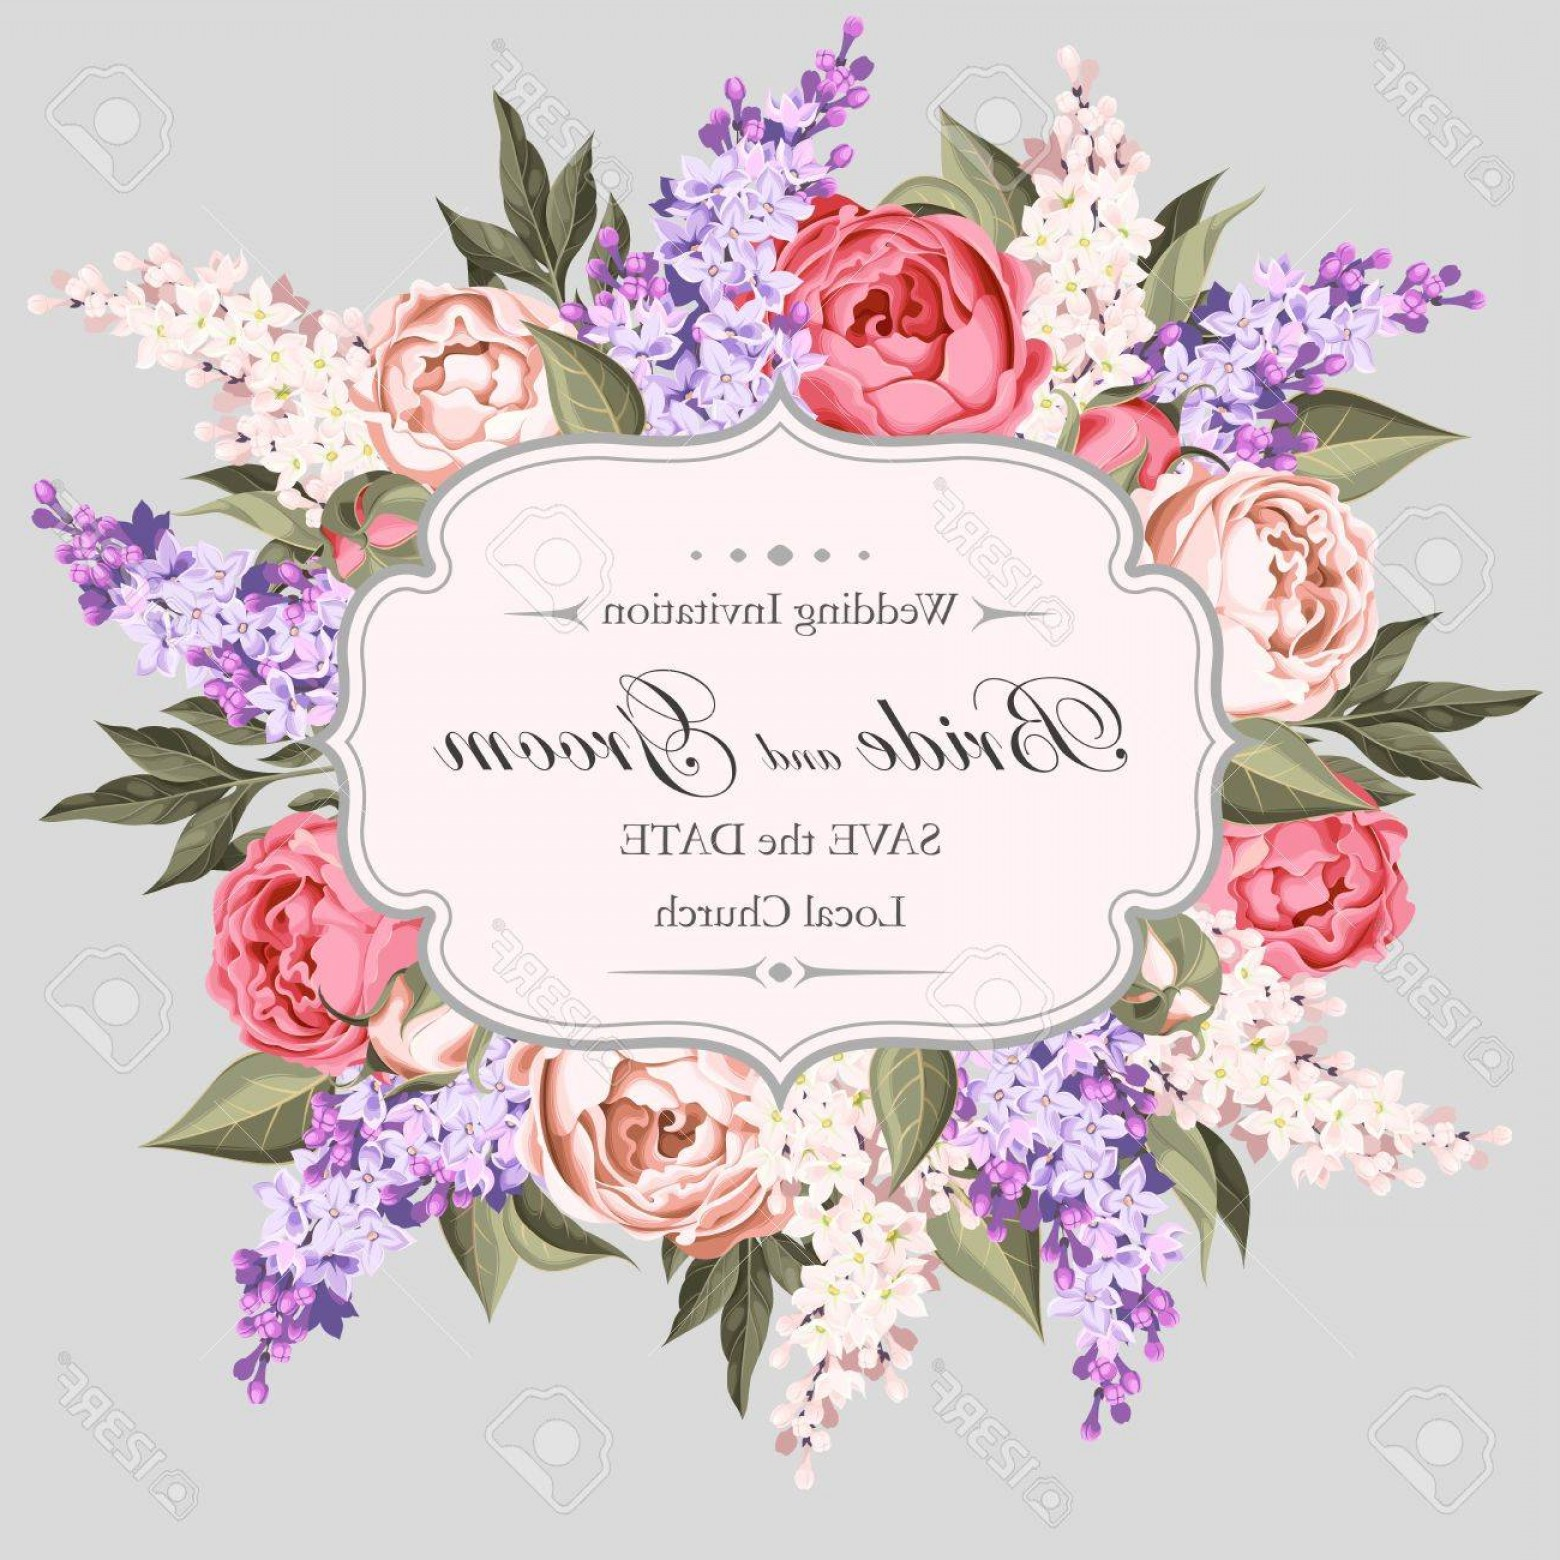 Lilac Wedding Vectors: Photostock Vector Vintage Wedding Invitation Decorated With Peony And Lilac